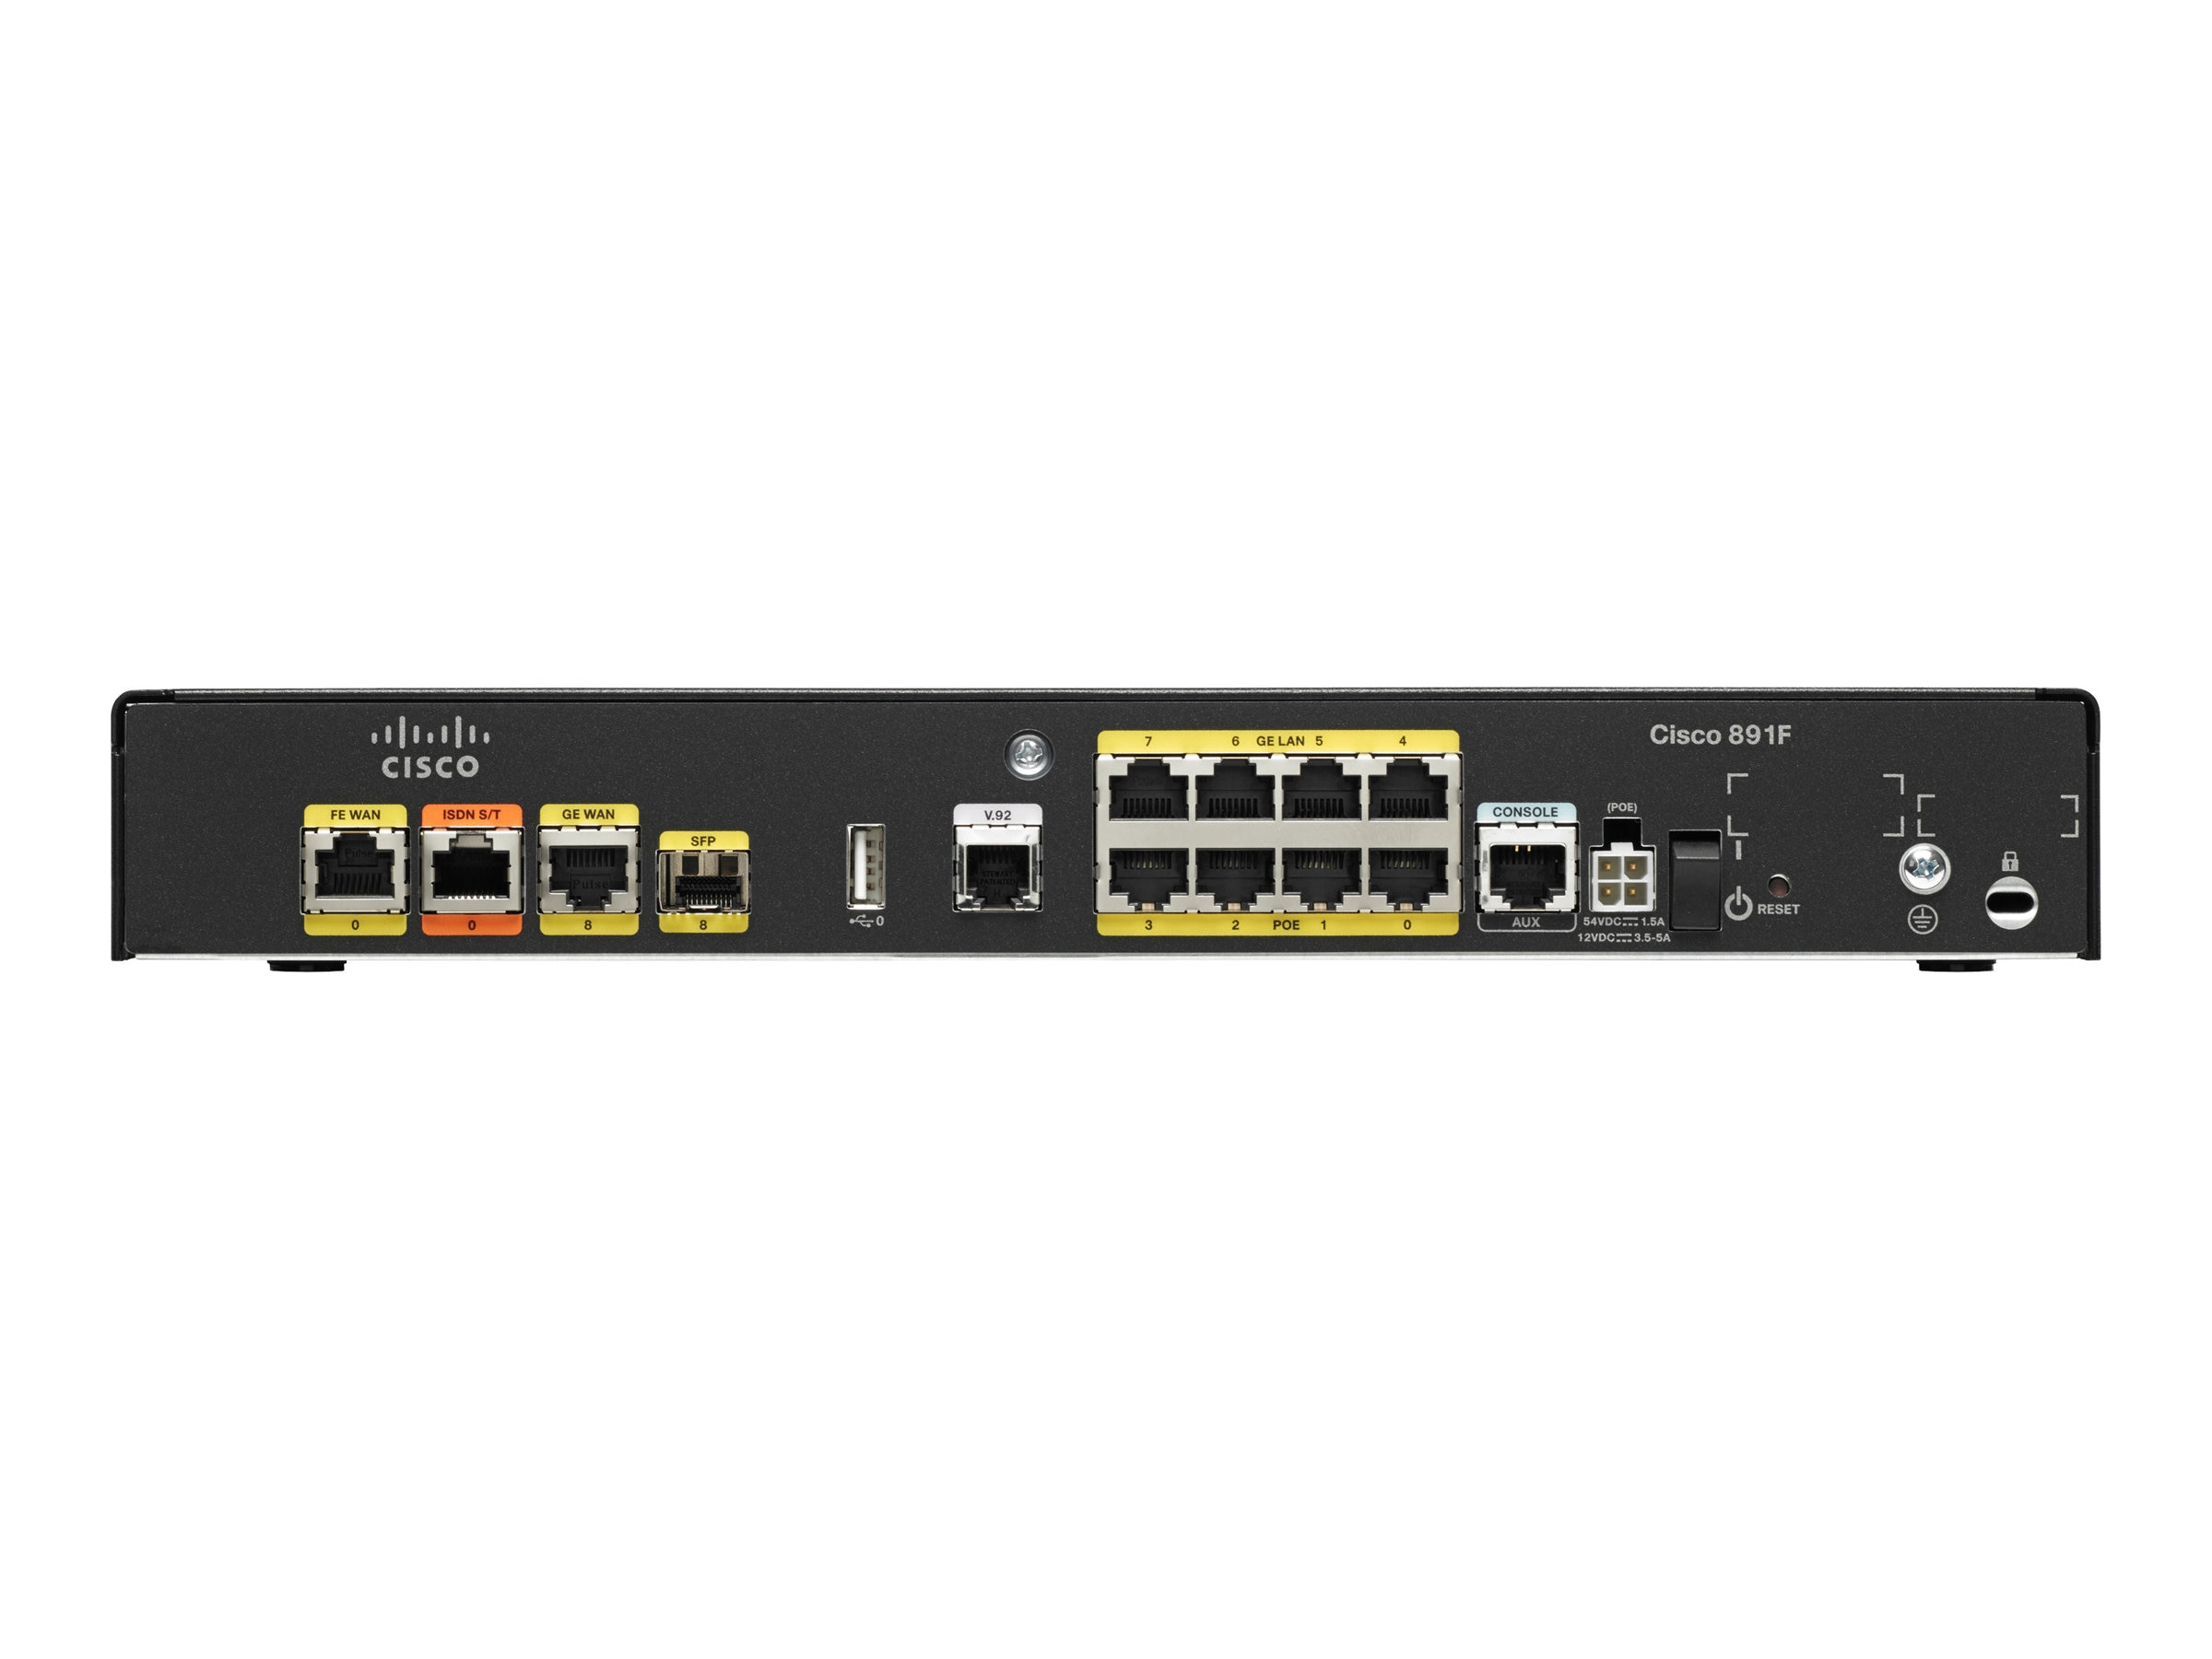 Cisco 891F 8-Port GbE ISDN Router Switch, C891F-K9